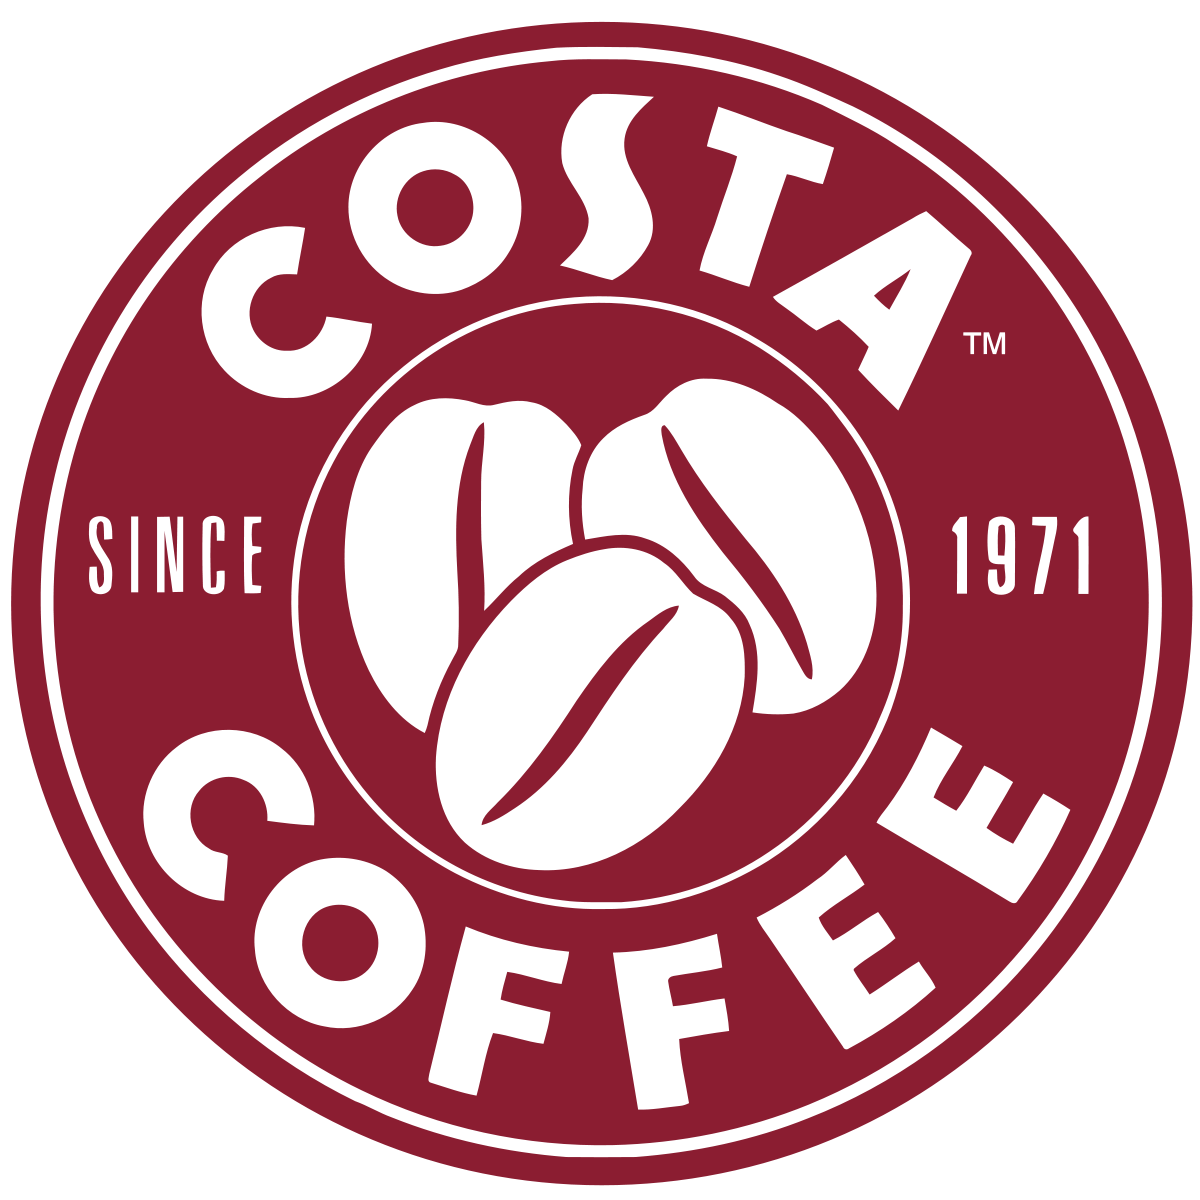 Free Costa coffee